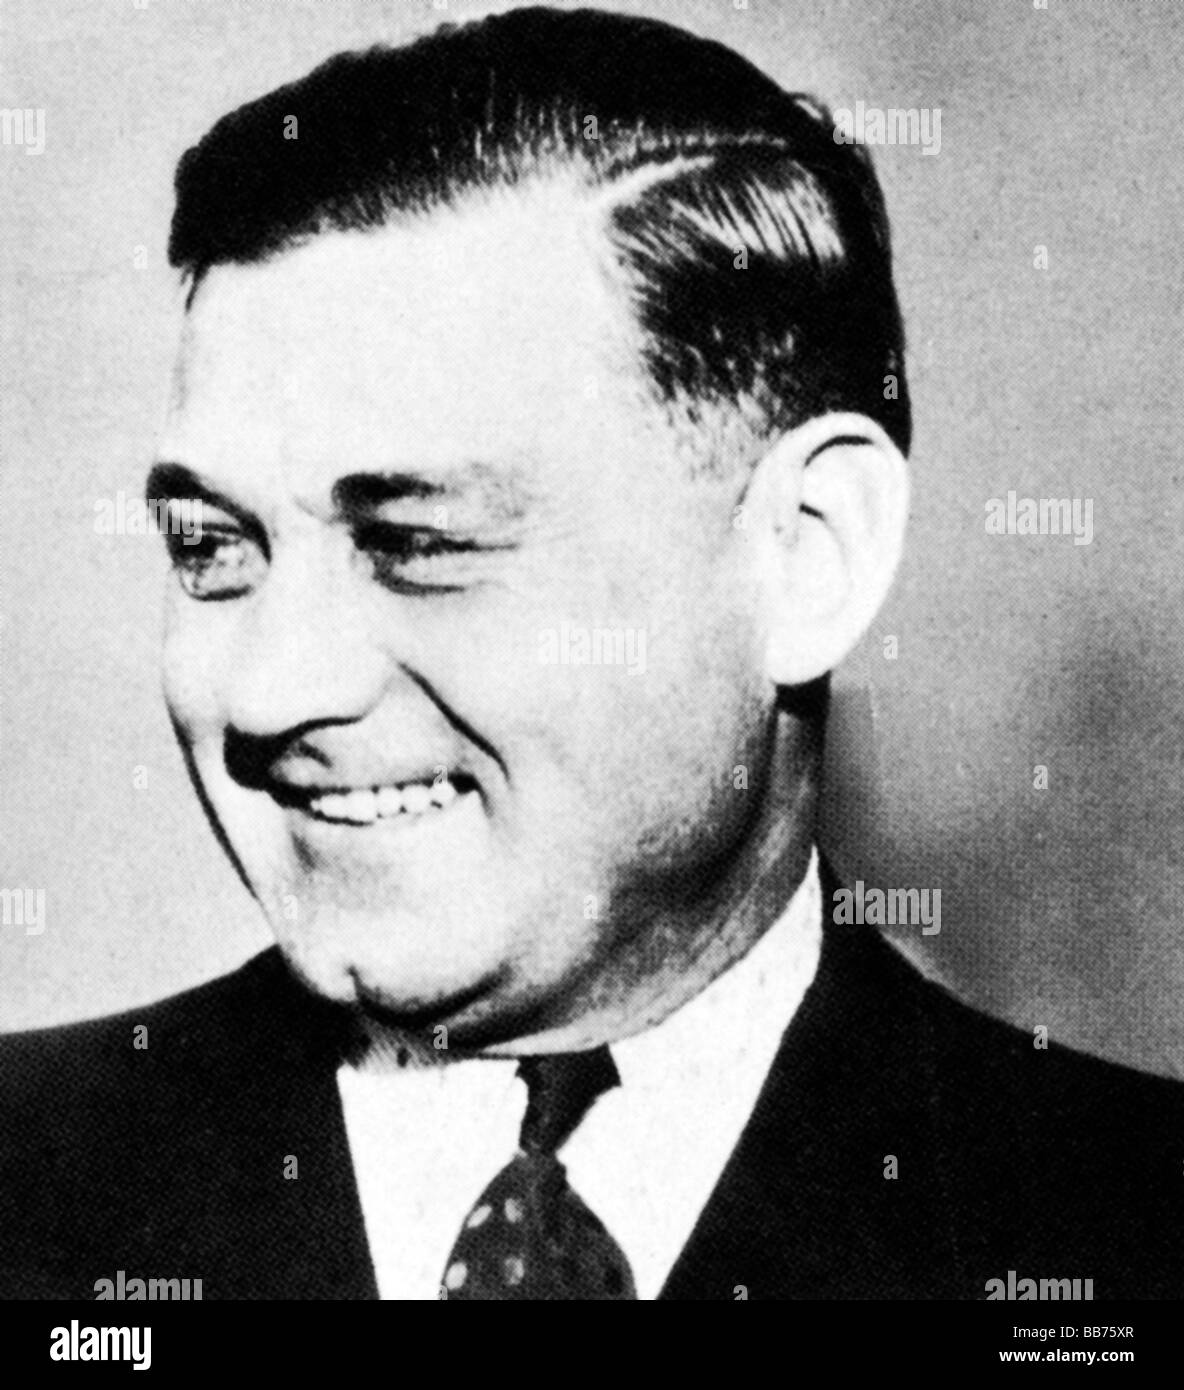 George Bugs Moran photo of the prohibition gangster leader of the North Side gang rivals to Capone in Chicago - Stock Image